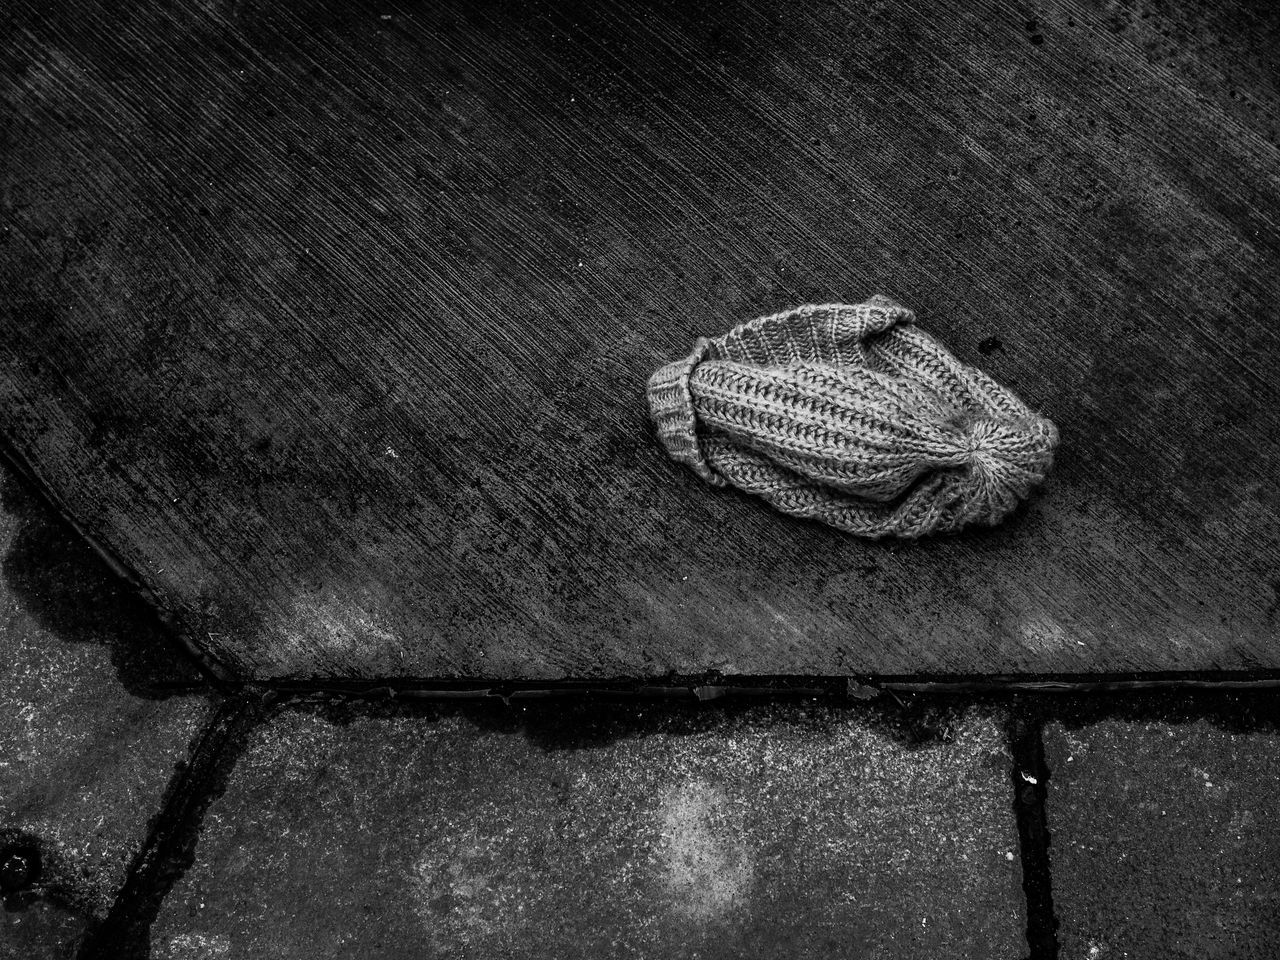 Lost wollen winter hat. Hat Hat On Pavement Lost Hat Lost Winter Hat Lost Wollen Hat No People Still Life Winter Hat Winterhat On Pavement